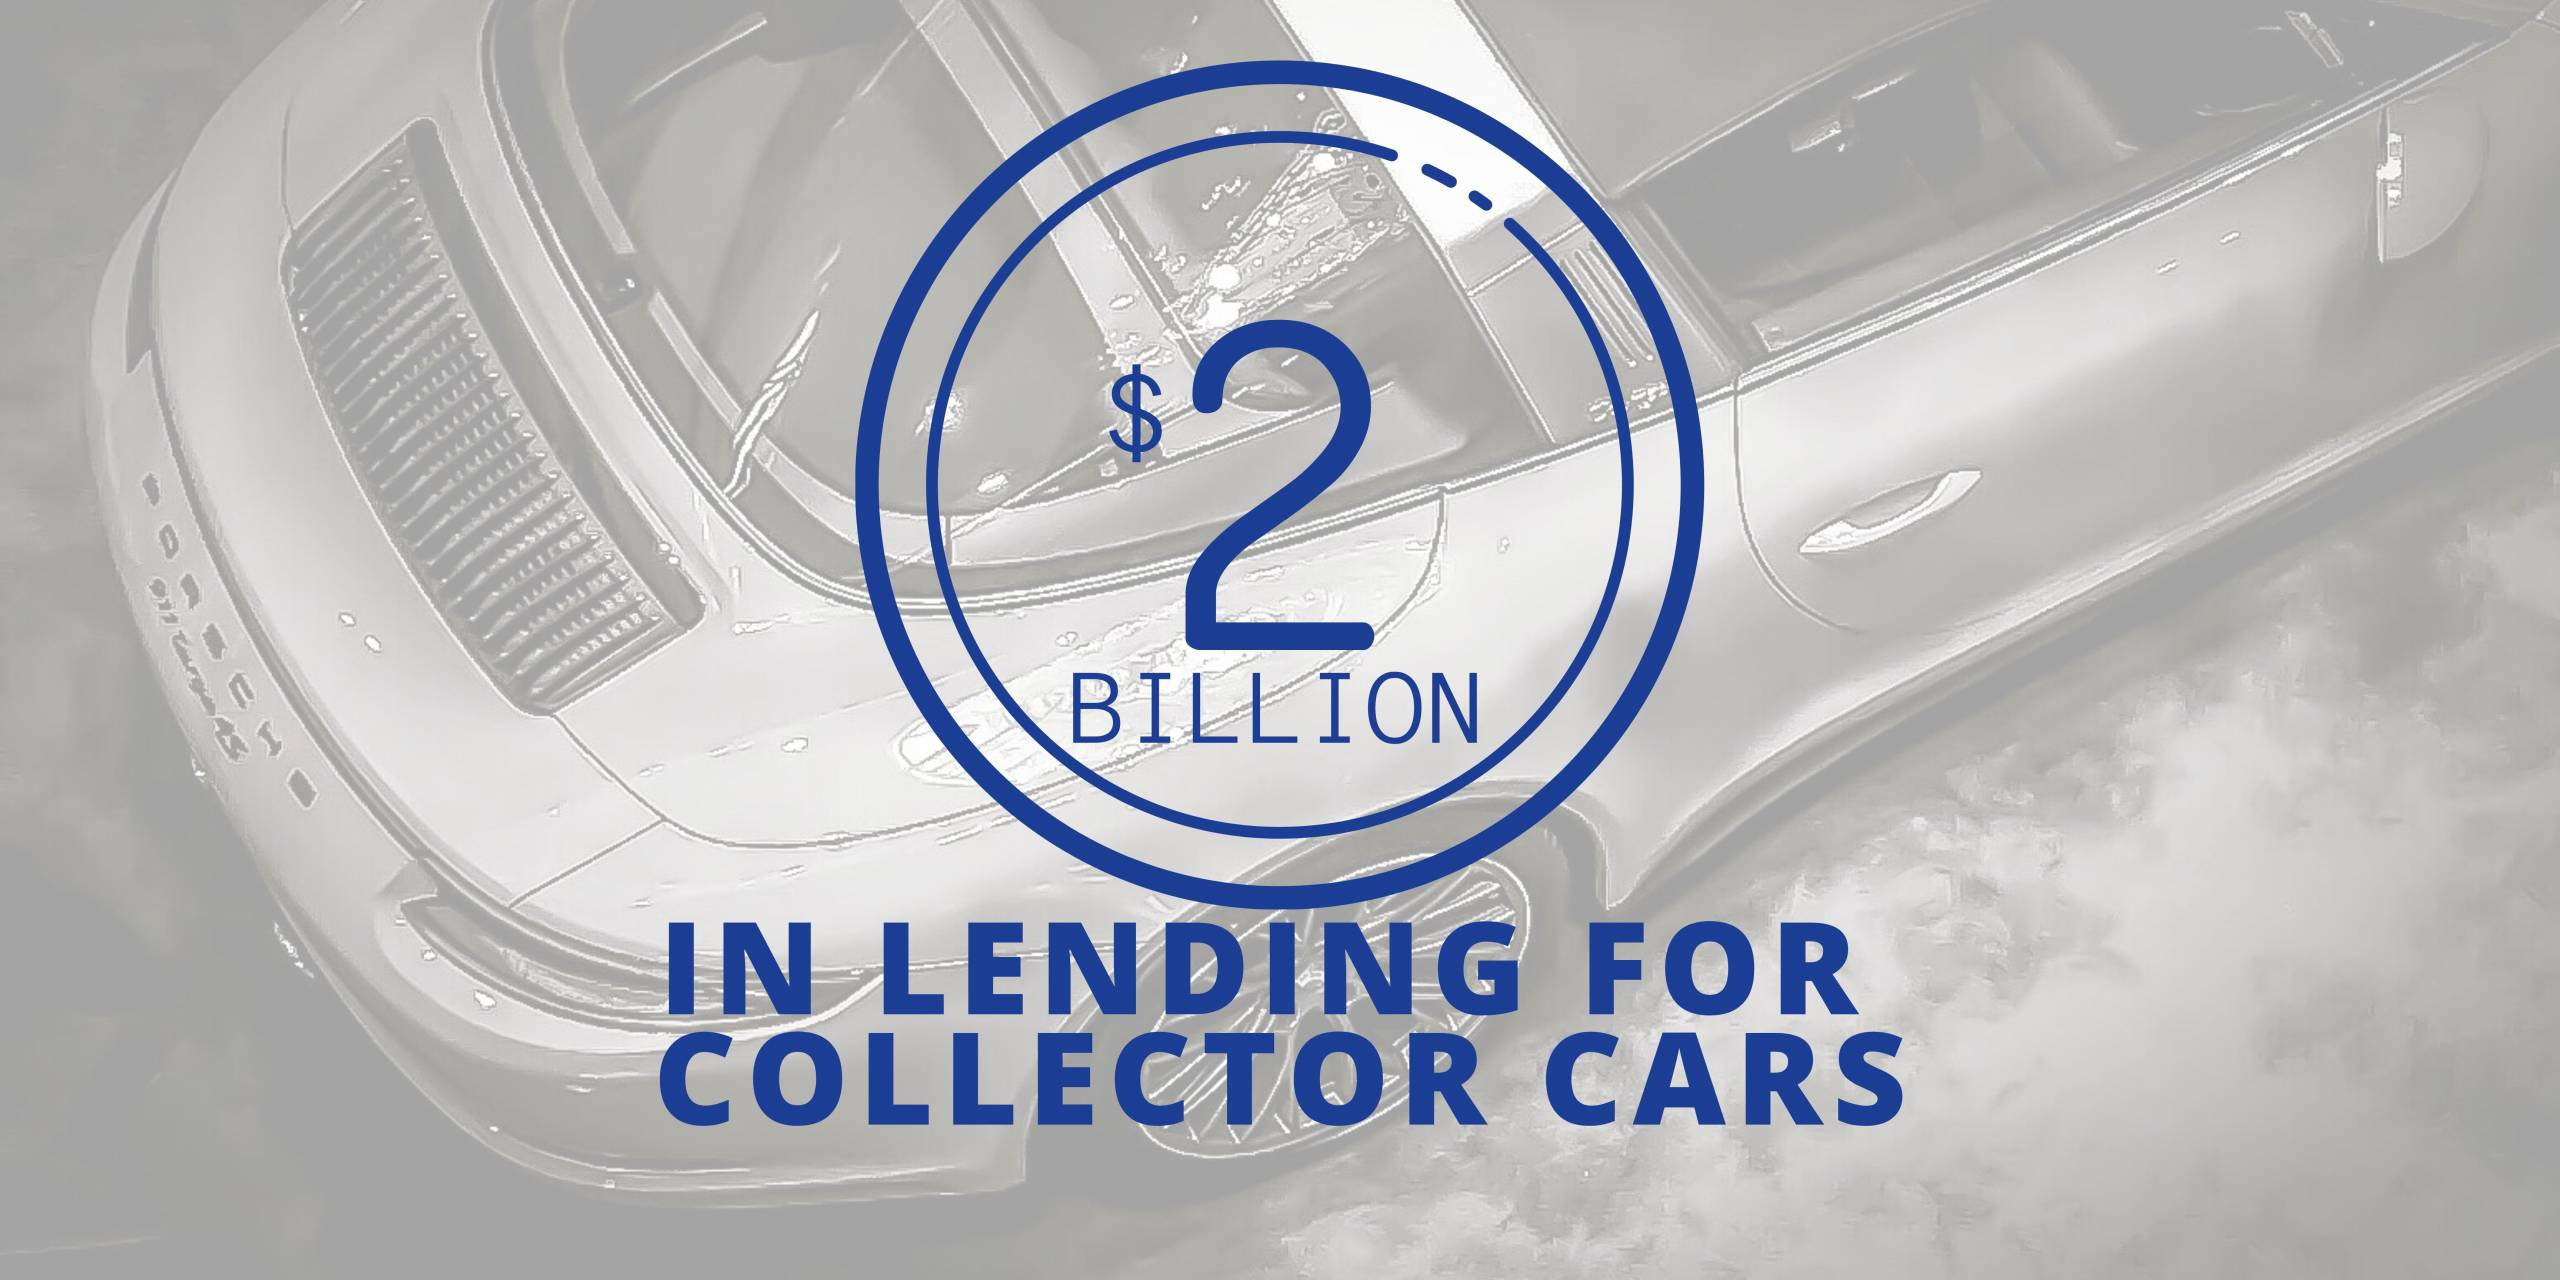 Woodside Credit Reaches $2 Billion in Lending for Classic, Collector, and Exotic Car Loans